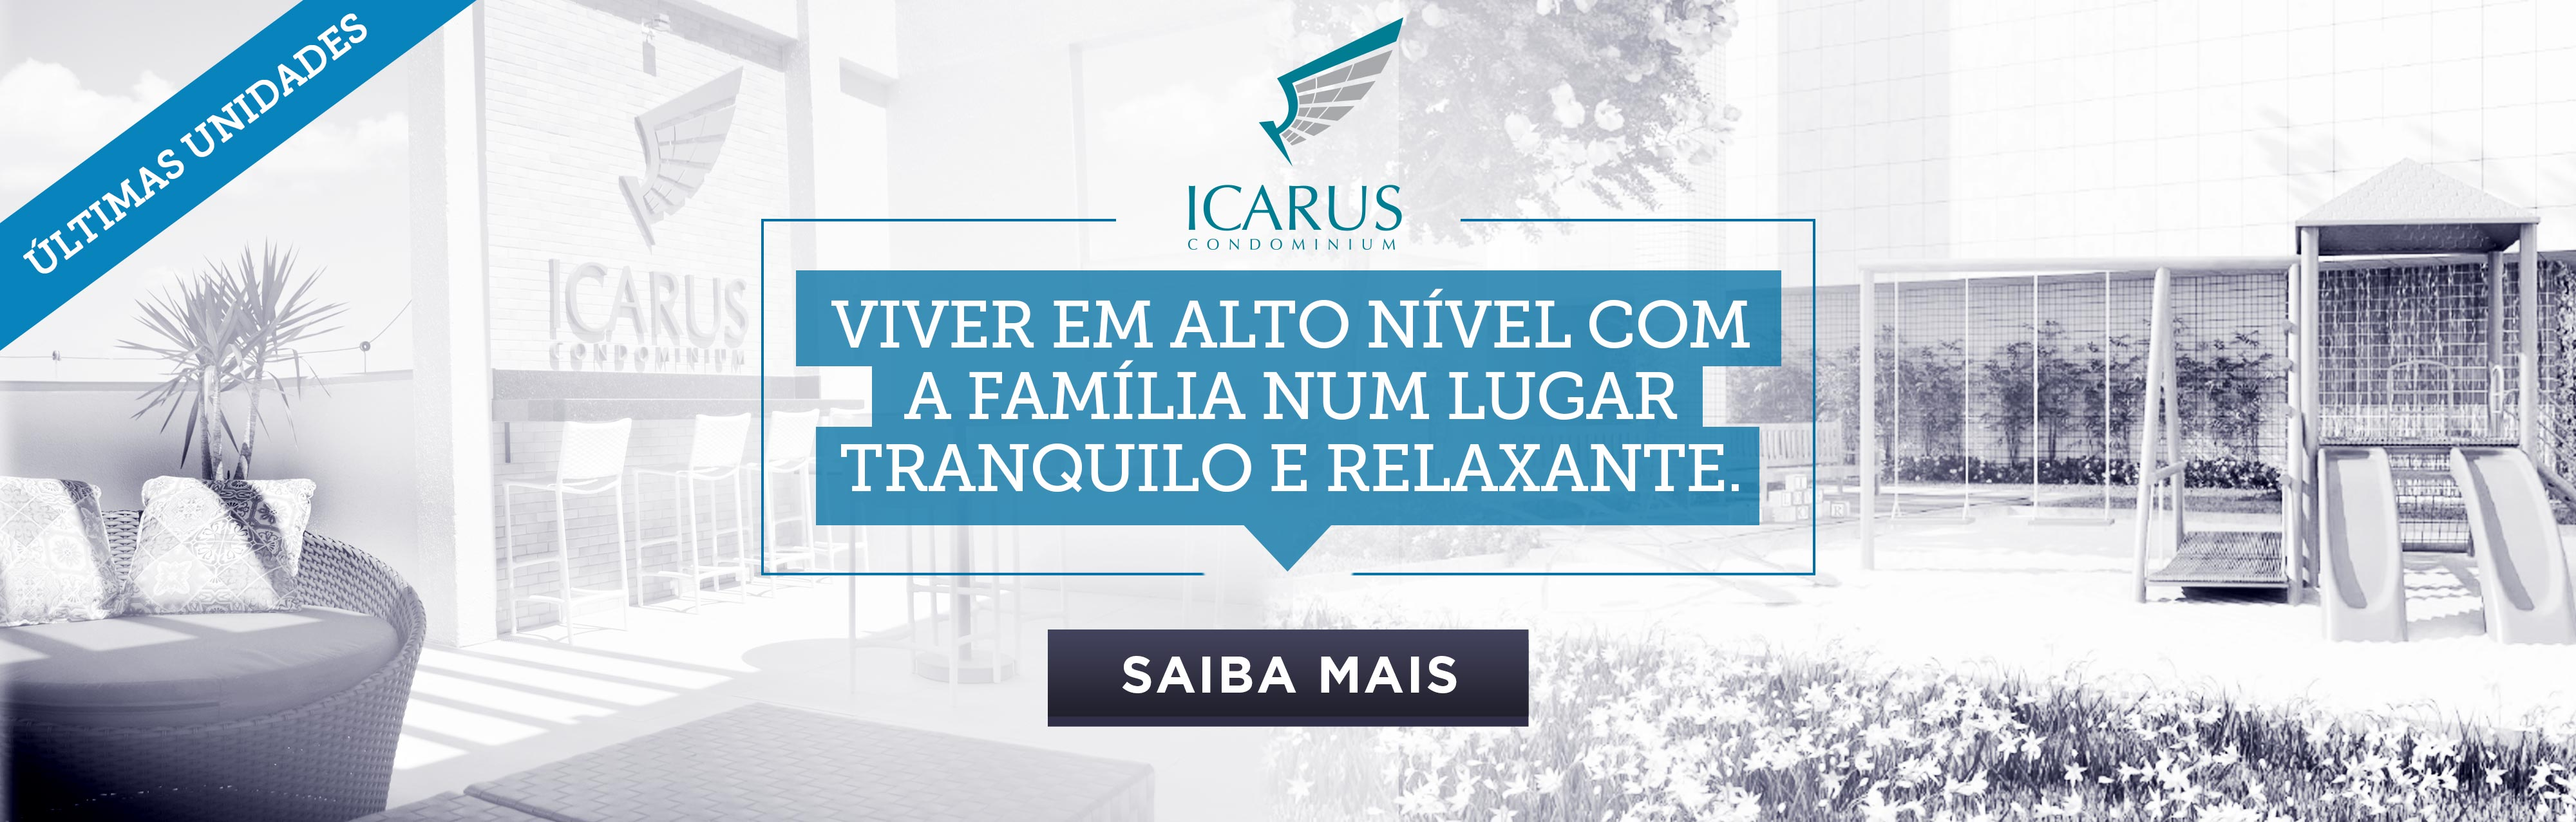 Banner-icarus